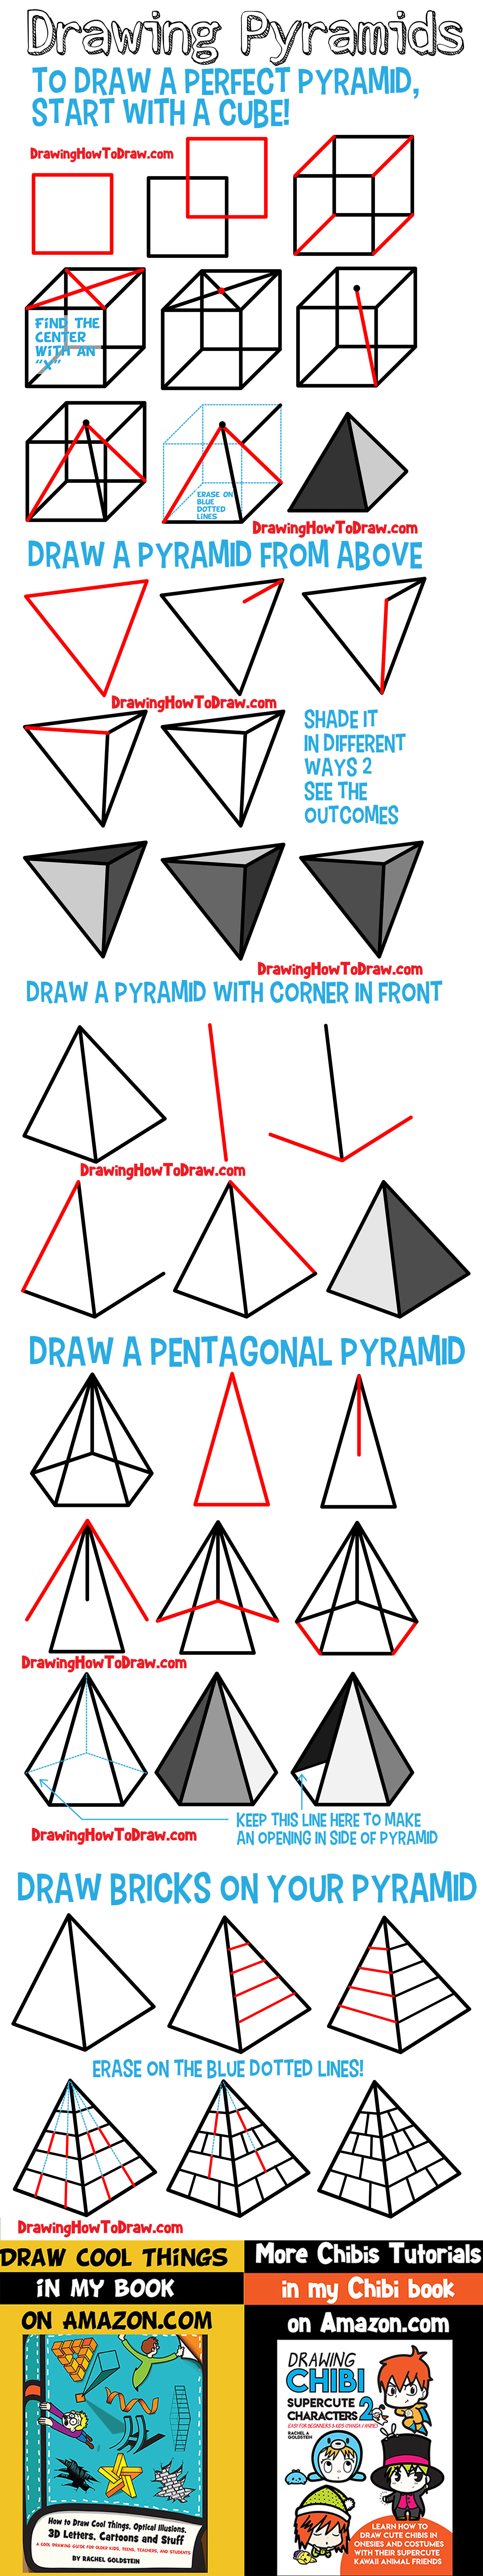 how to draw pyramids, how to draw a pyramid, shading, shade, pyramid, pyramids, guide